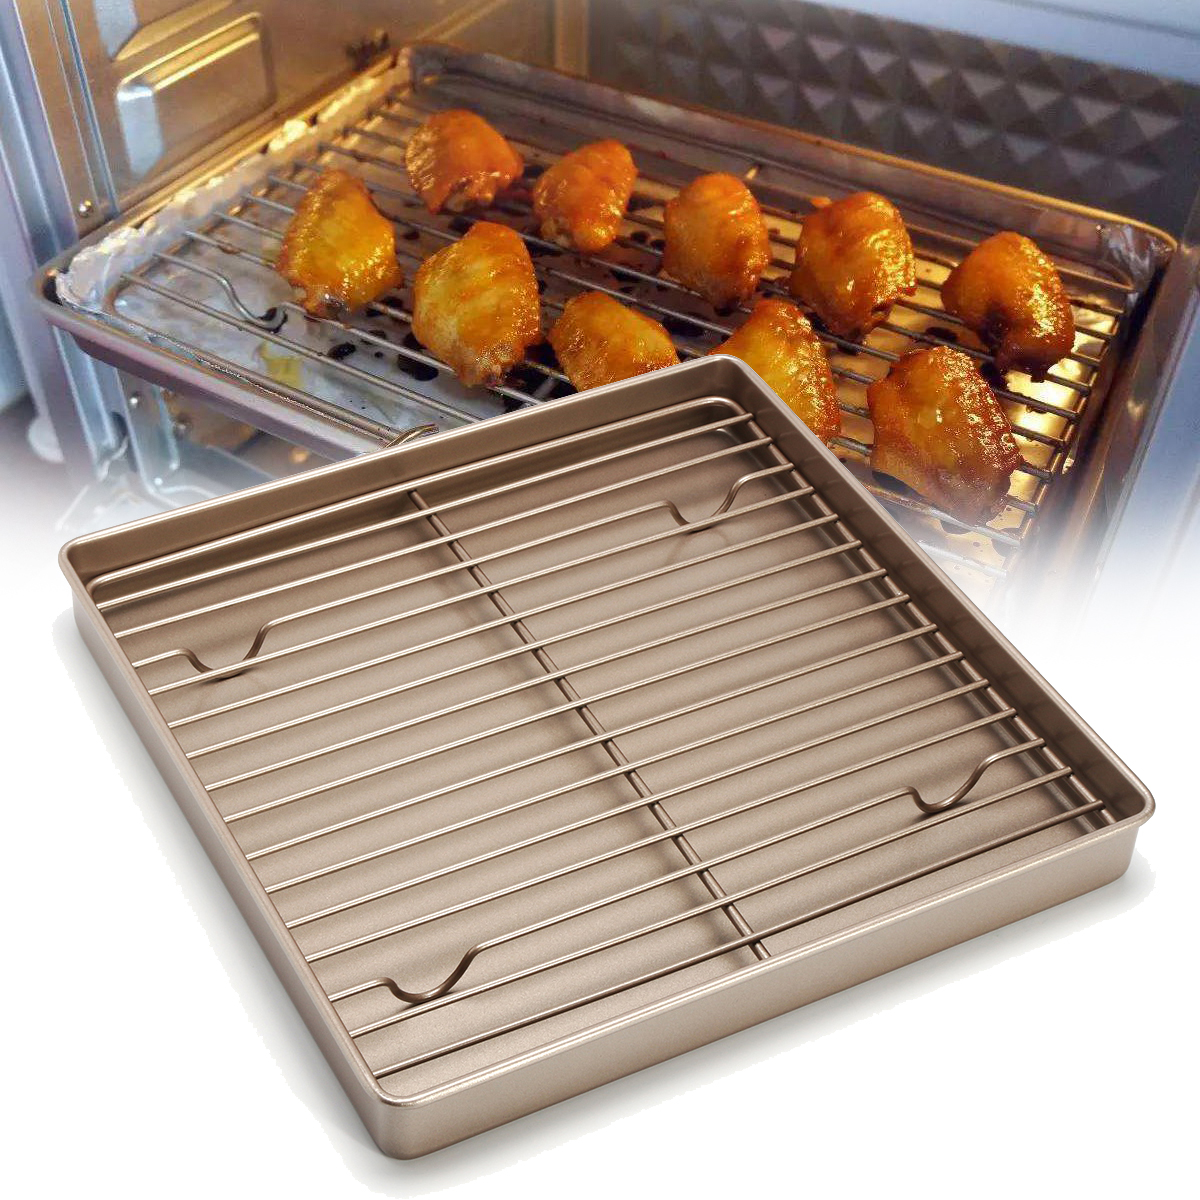 Stainless Steel Wire Cooling Rack & Nonstick Baking Cake Pan for Baking Cooling Cookies, Cakes, Breads - Oven Safe for Cooking, Roasting, Grilling